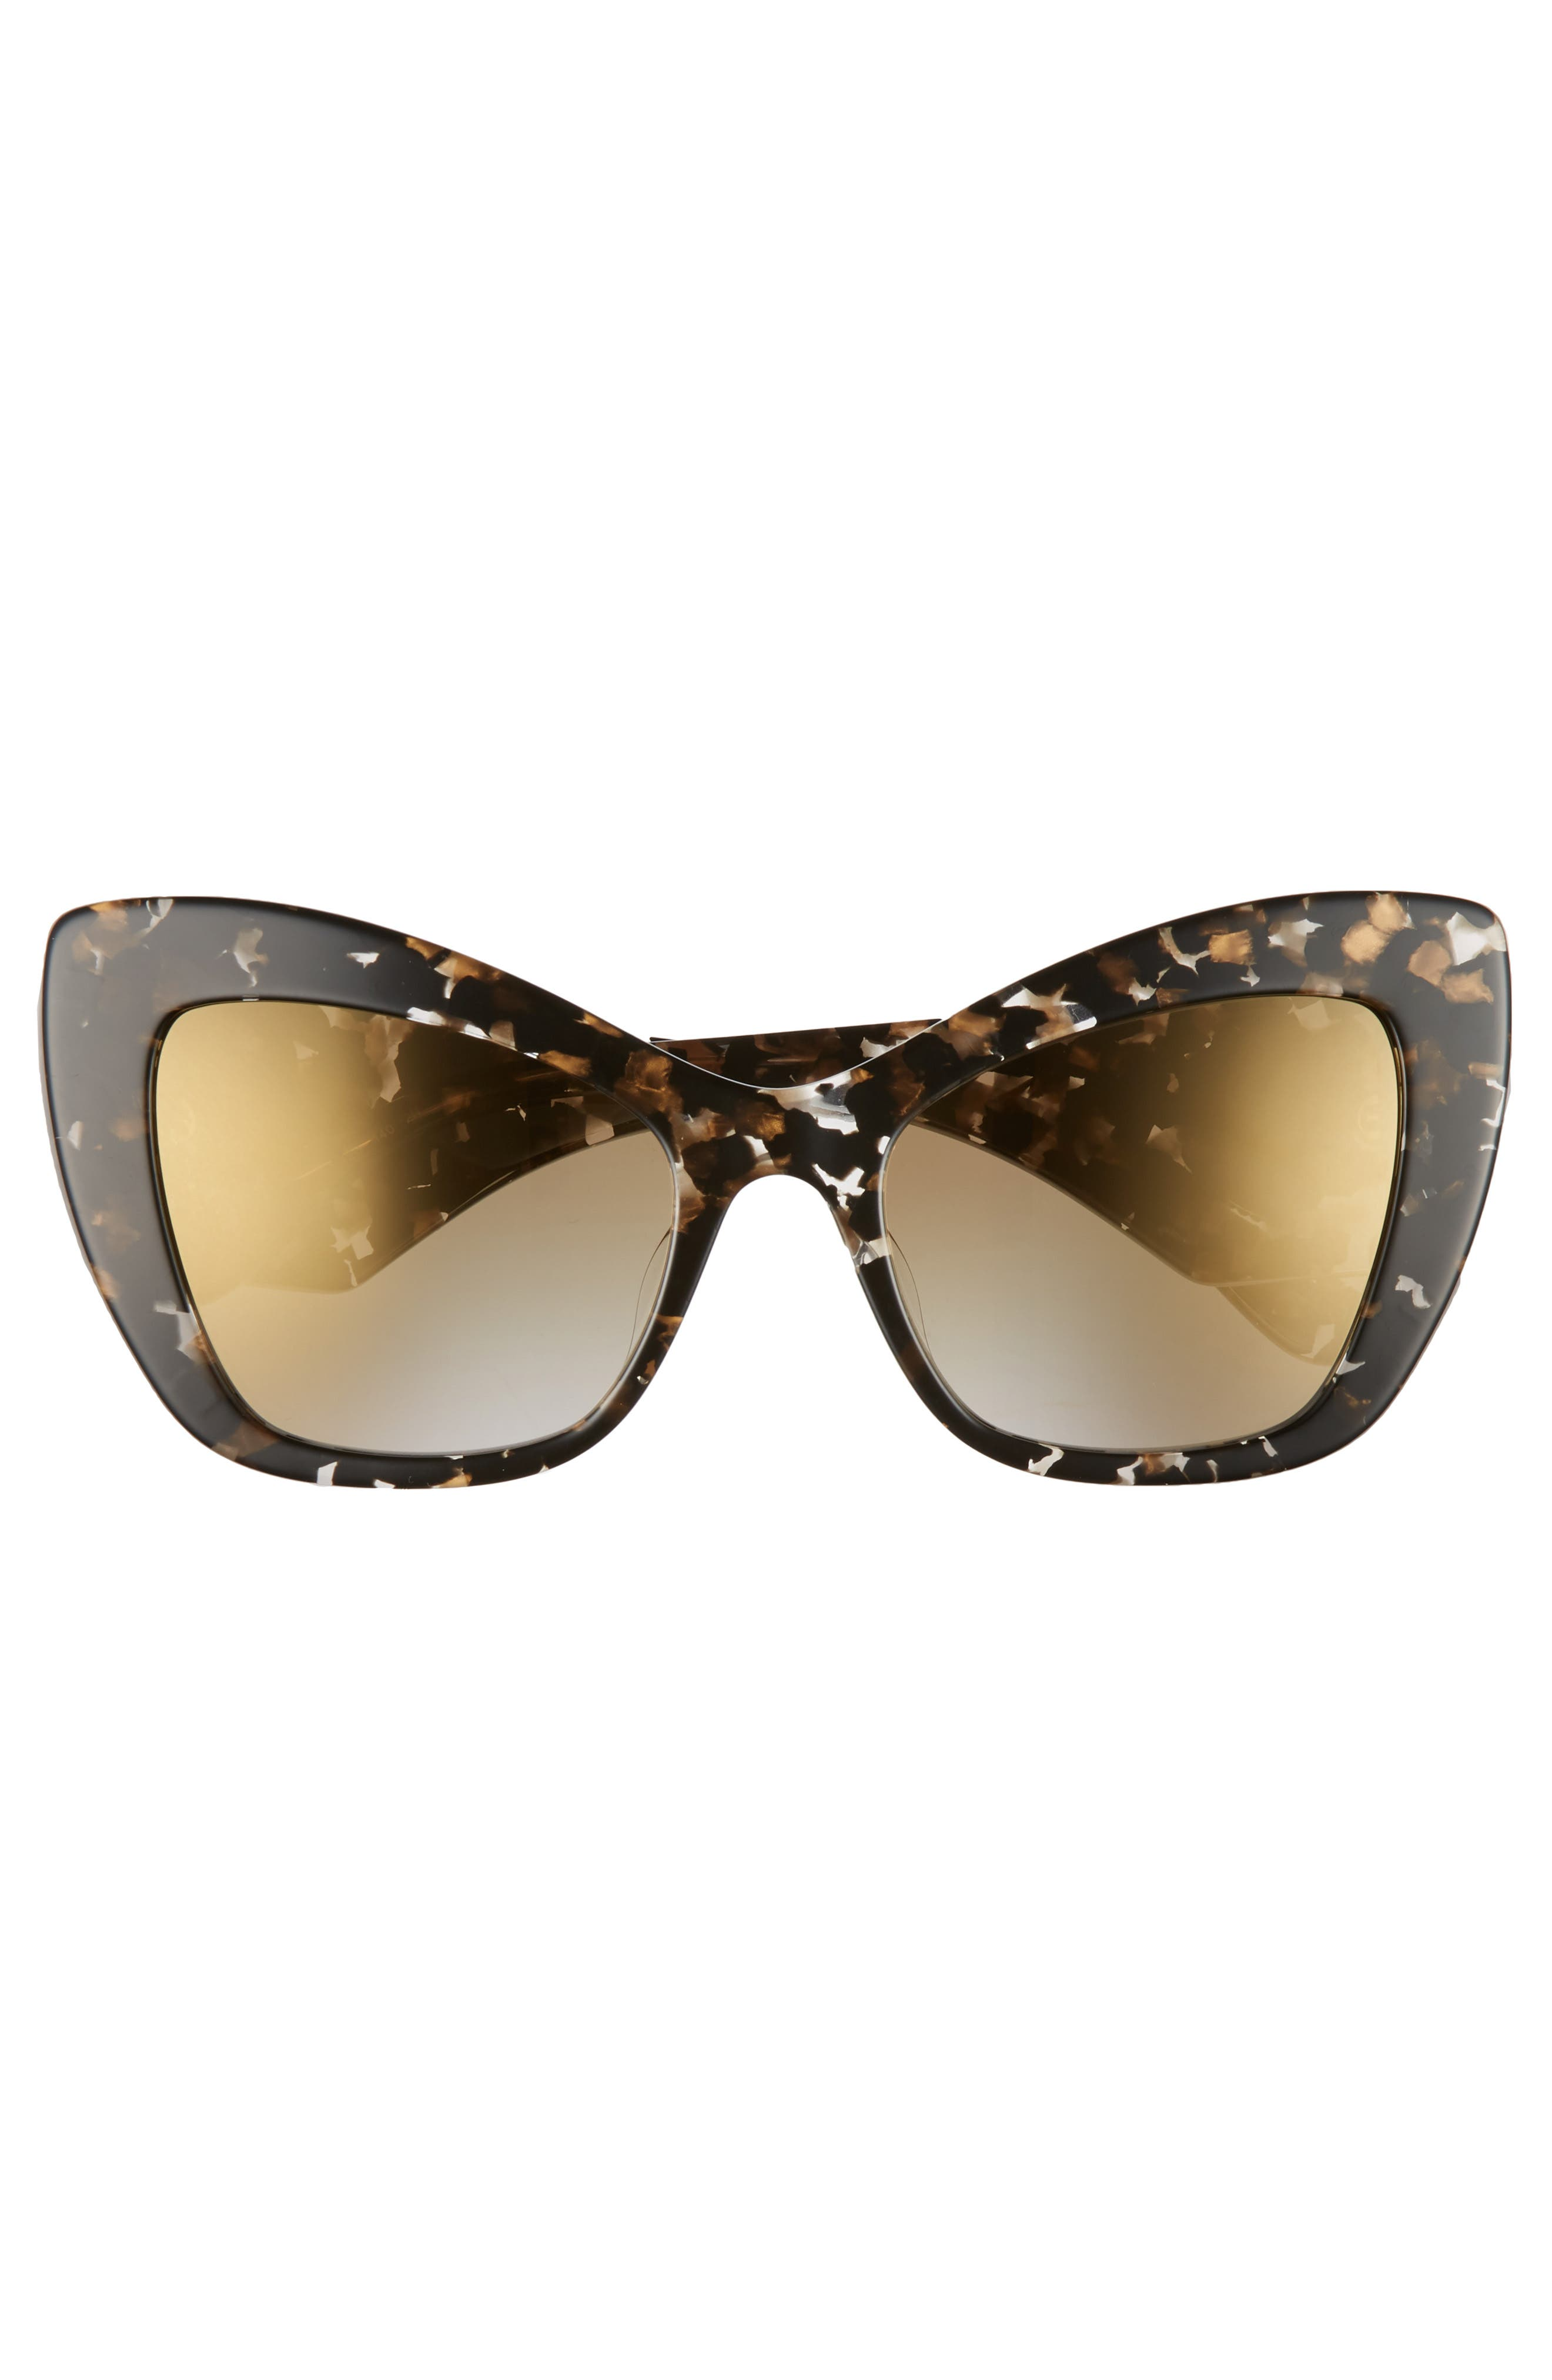 DOLCE&GABBANA,                             Sacred Heart 54mm Gradient Cat Eye Sunglasses,                             Alternate thumbnail 3, color,                             BLACK GOLD GRADIENT MIRROR